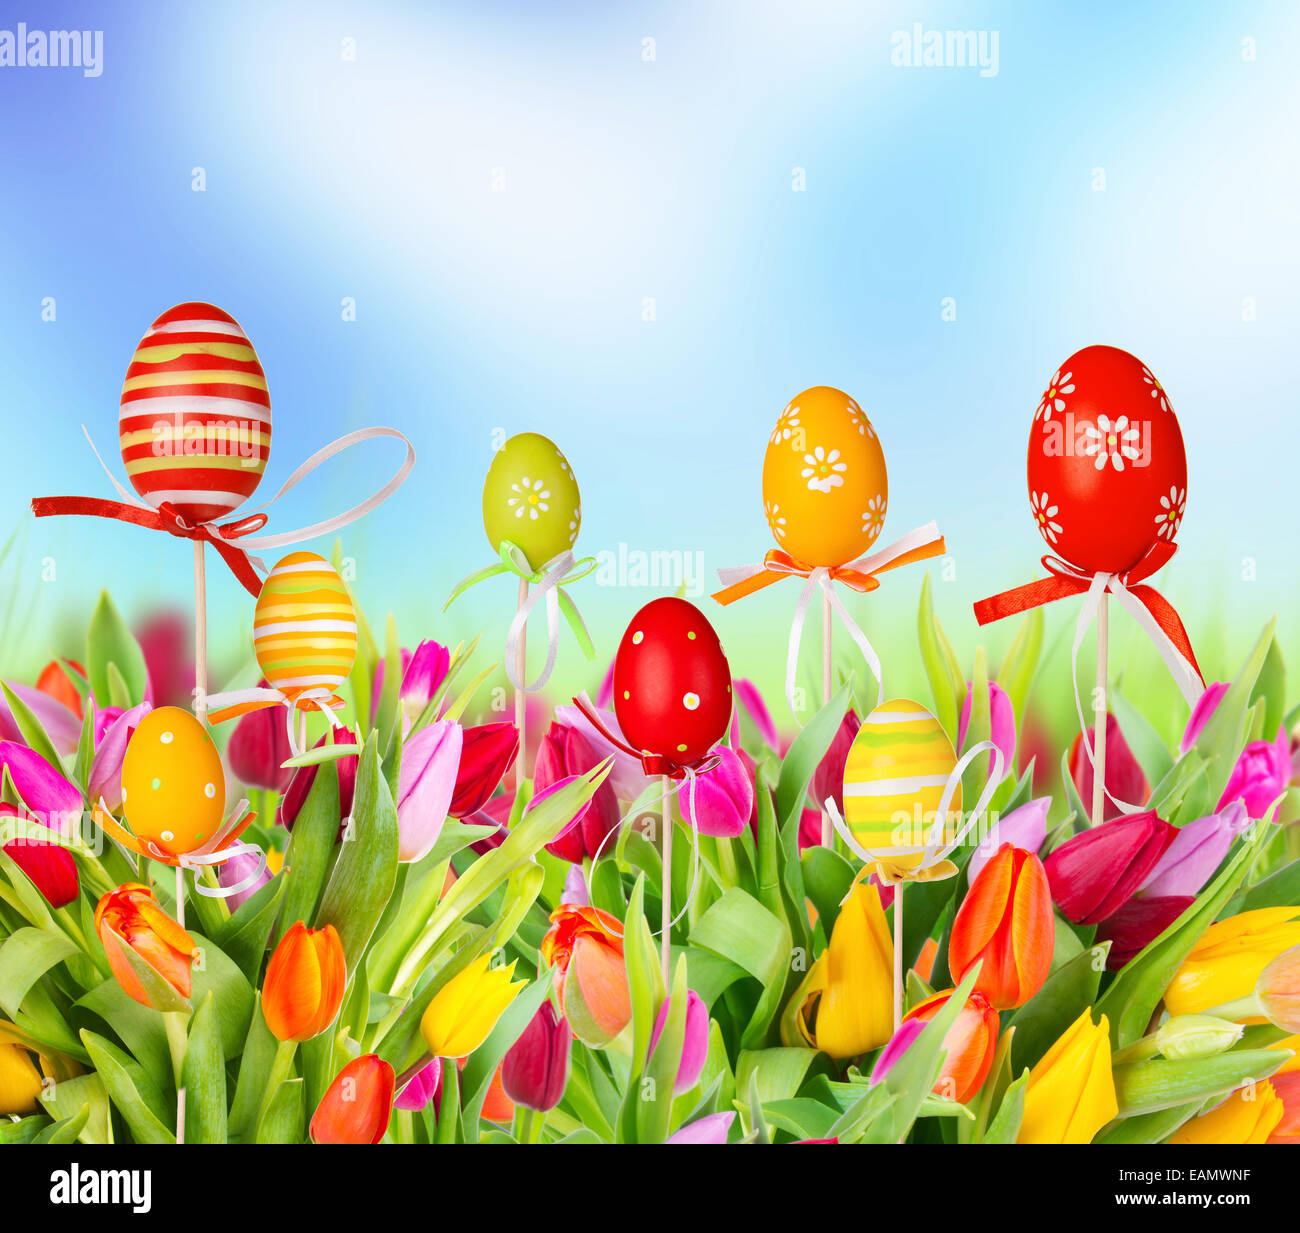 Colorful Spring Flowers Bouquet Butterflies Stockfotos Colorful